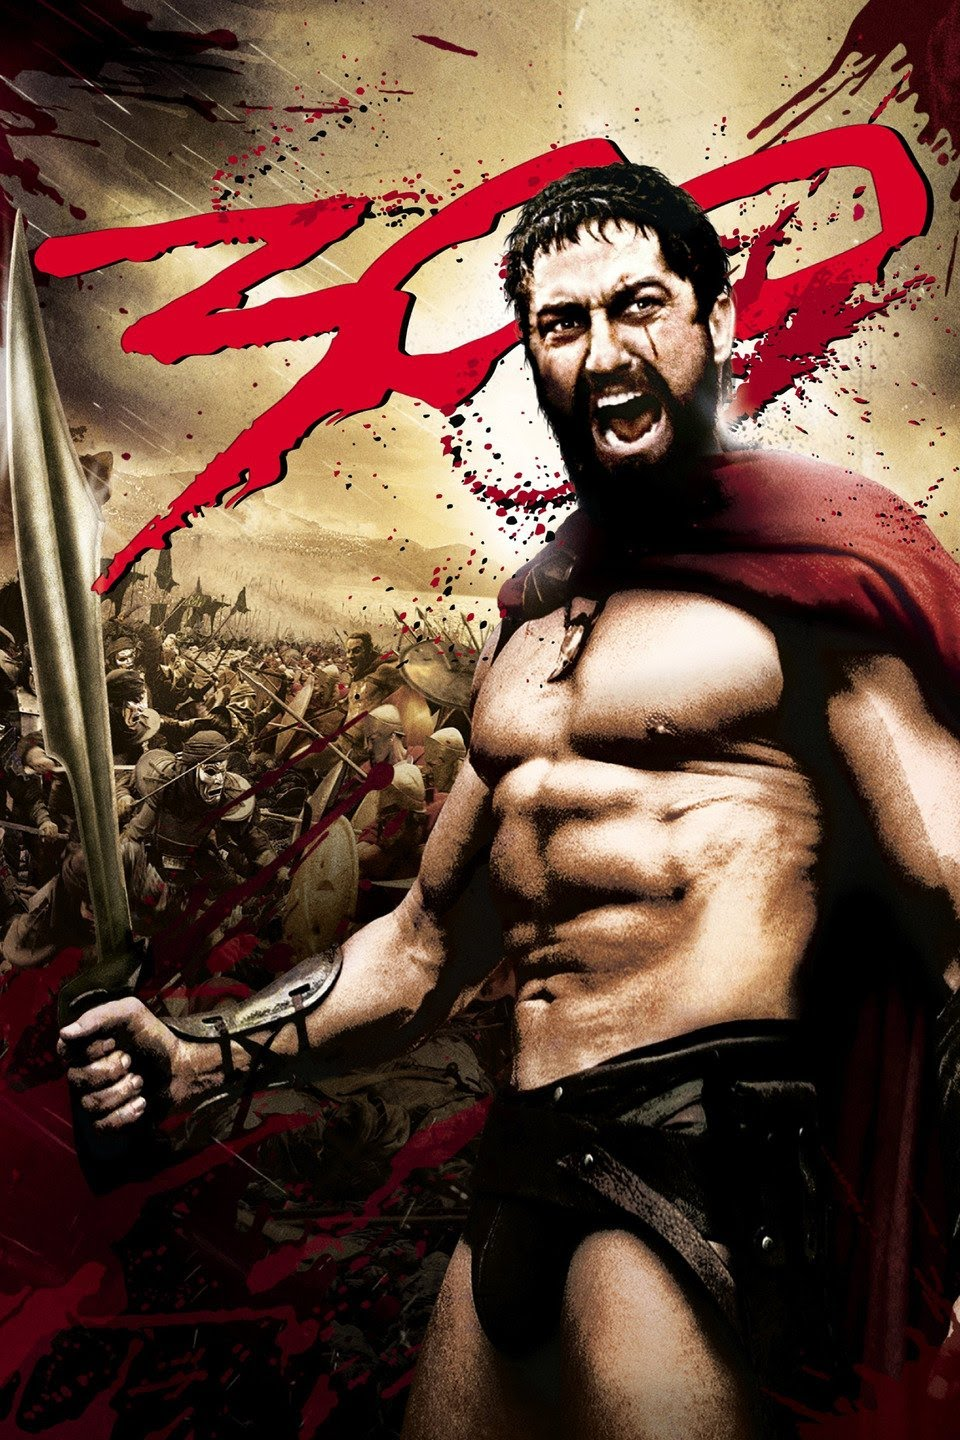 Download 300 (2006) Full Movie In Hindi-English (Dual Audio) Bluray 480p [350MB] | 720p [1.6GB] | 1080p [3.3GB]